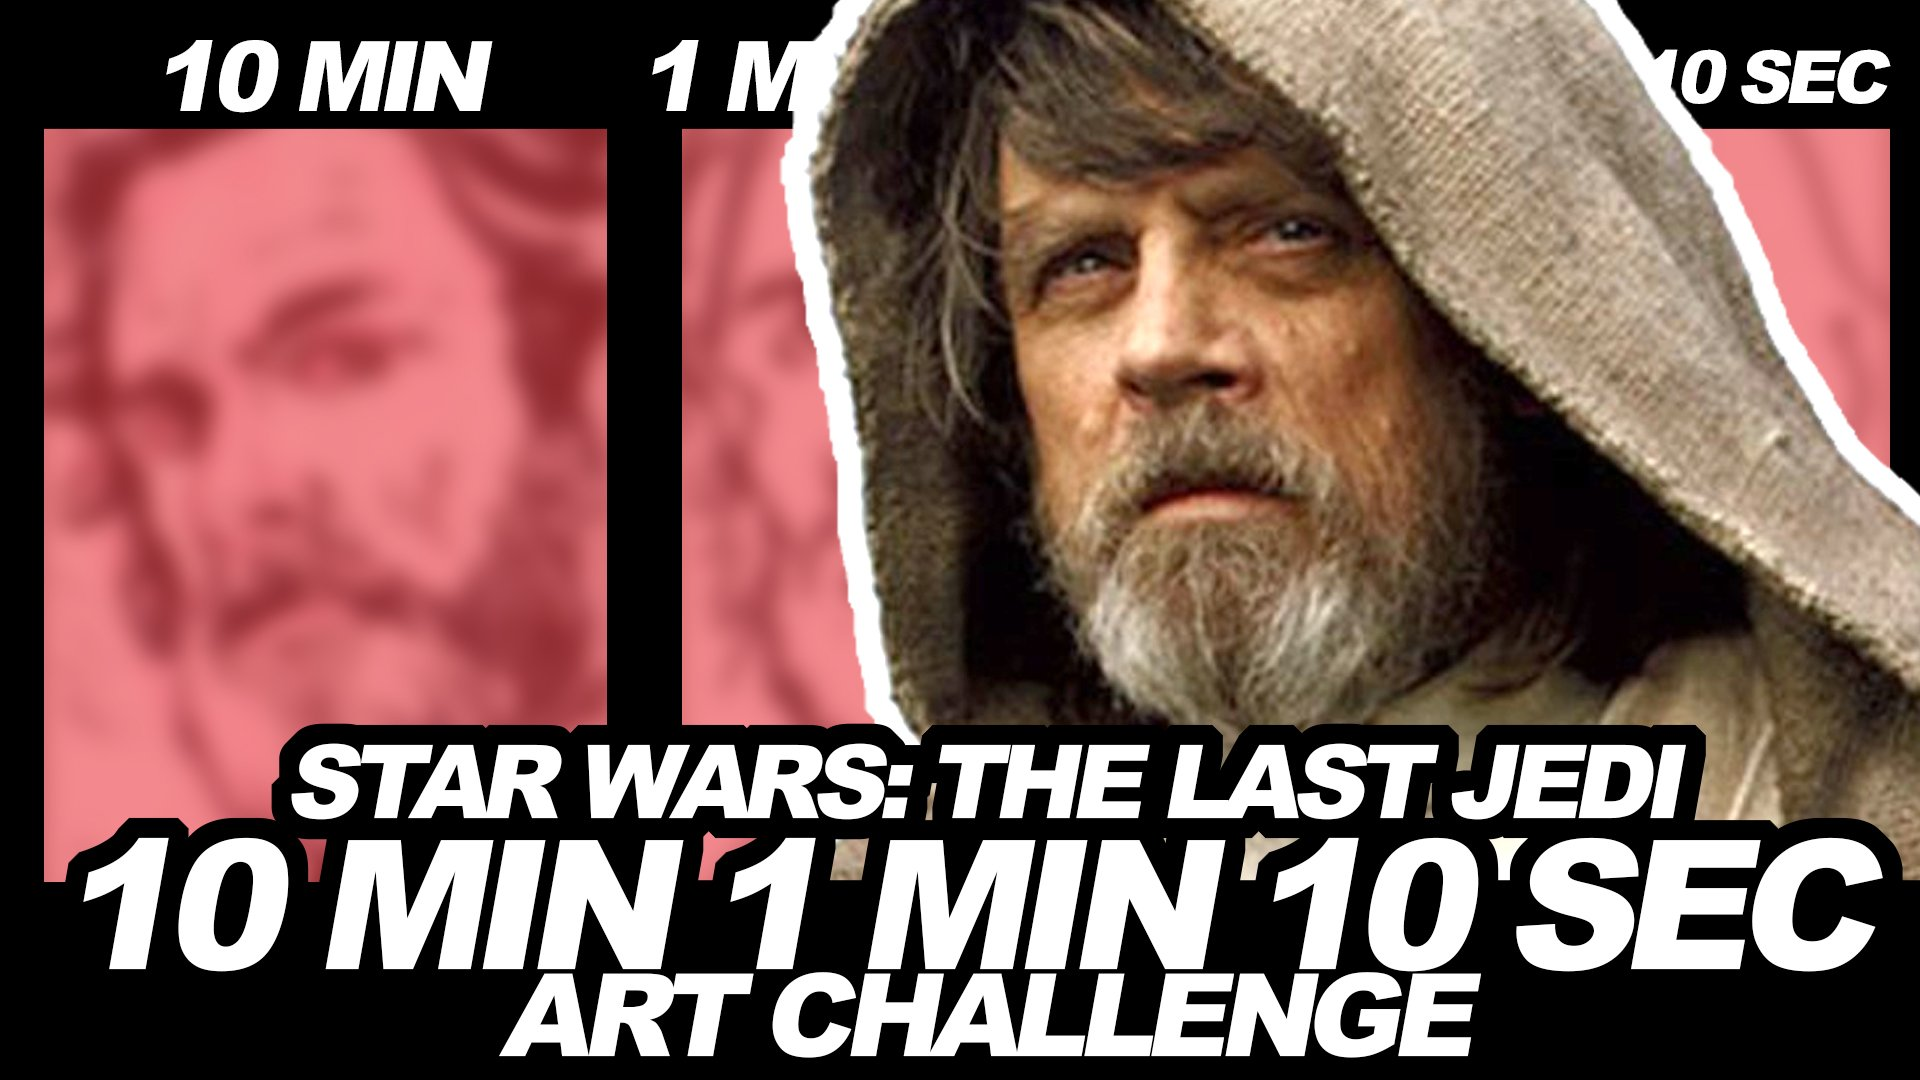 James Raiz On Twitter Drawing My Hero Hamillhimself In Honor Of Starwars Thelastjedi As Lukeskywalker In The 10 Minute 1 Minute And 10 Second Art Challenge You Can Watch It Here